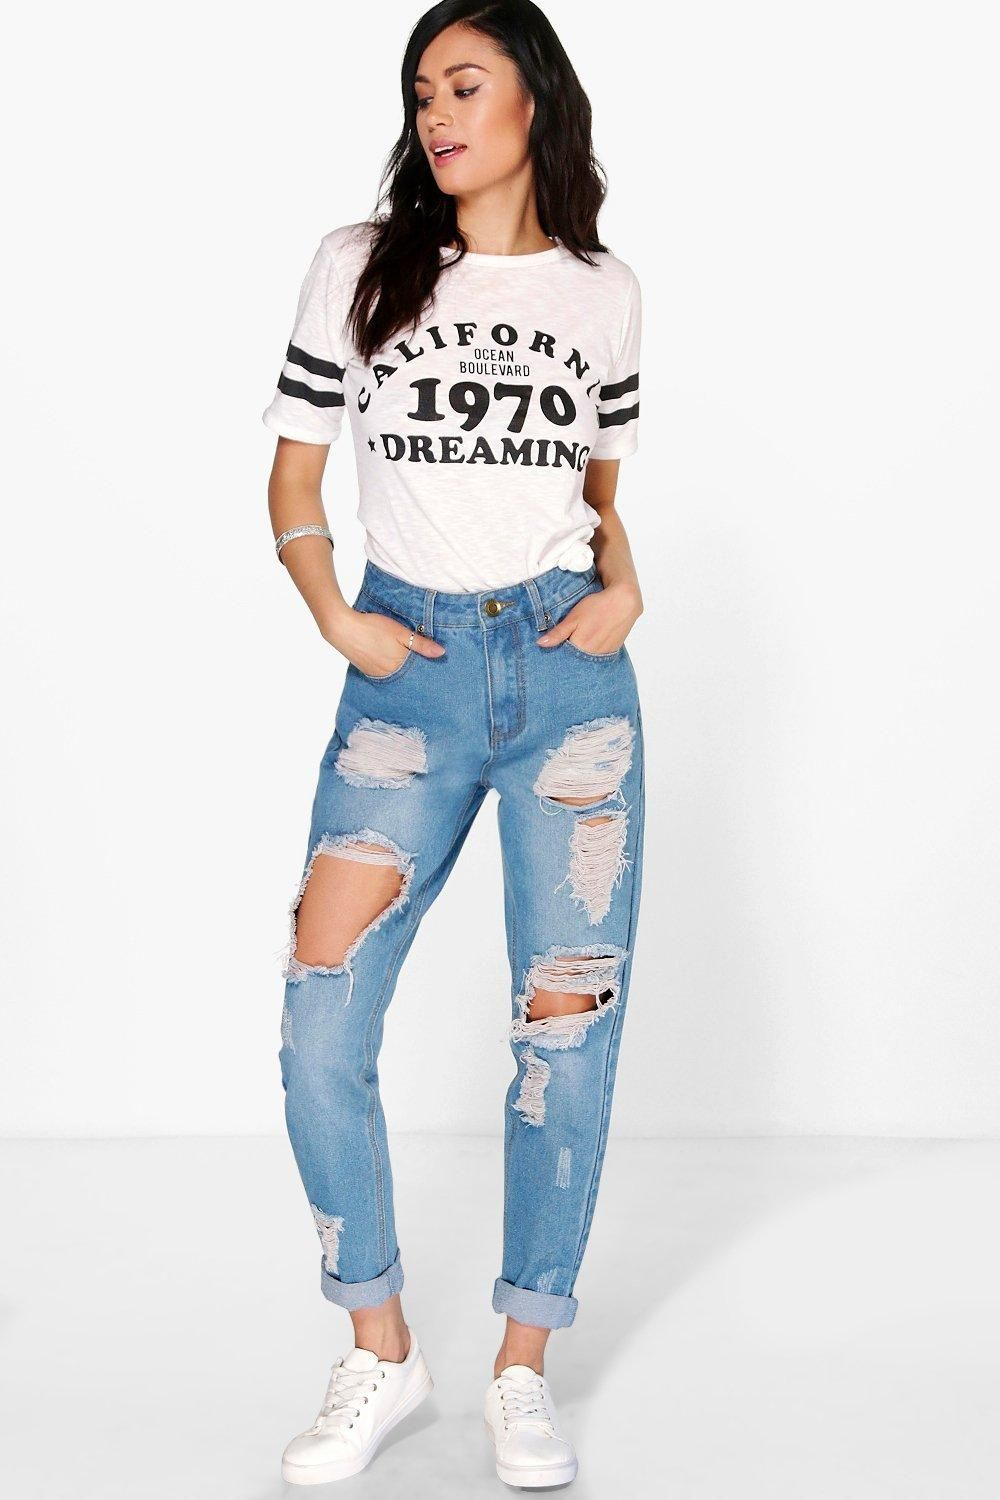 a2992bc797 Jeans are the genius wear-with-anything wardrobe item Skinny, straight, or  slim, find your perfect jeans fit in the boohoo denim collection.